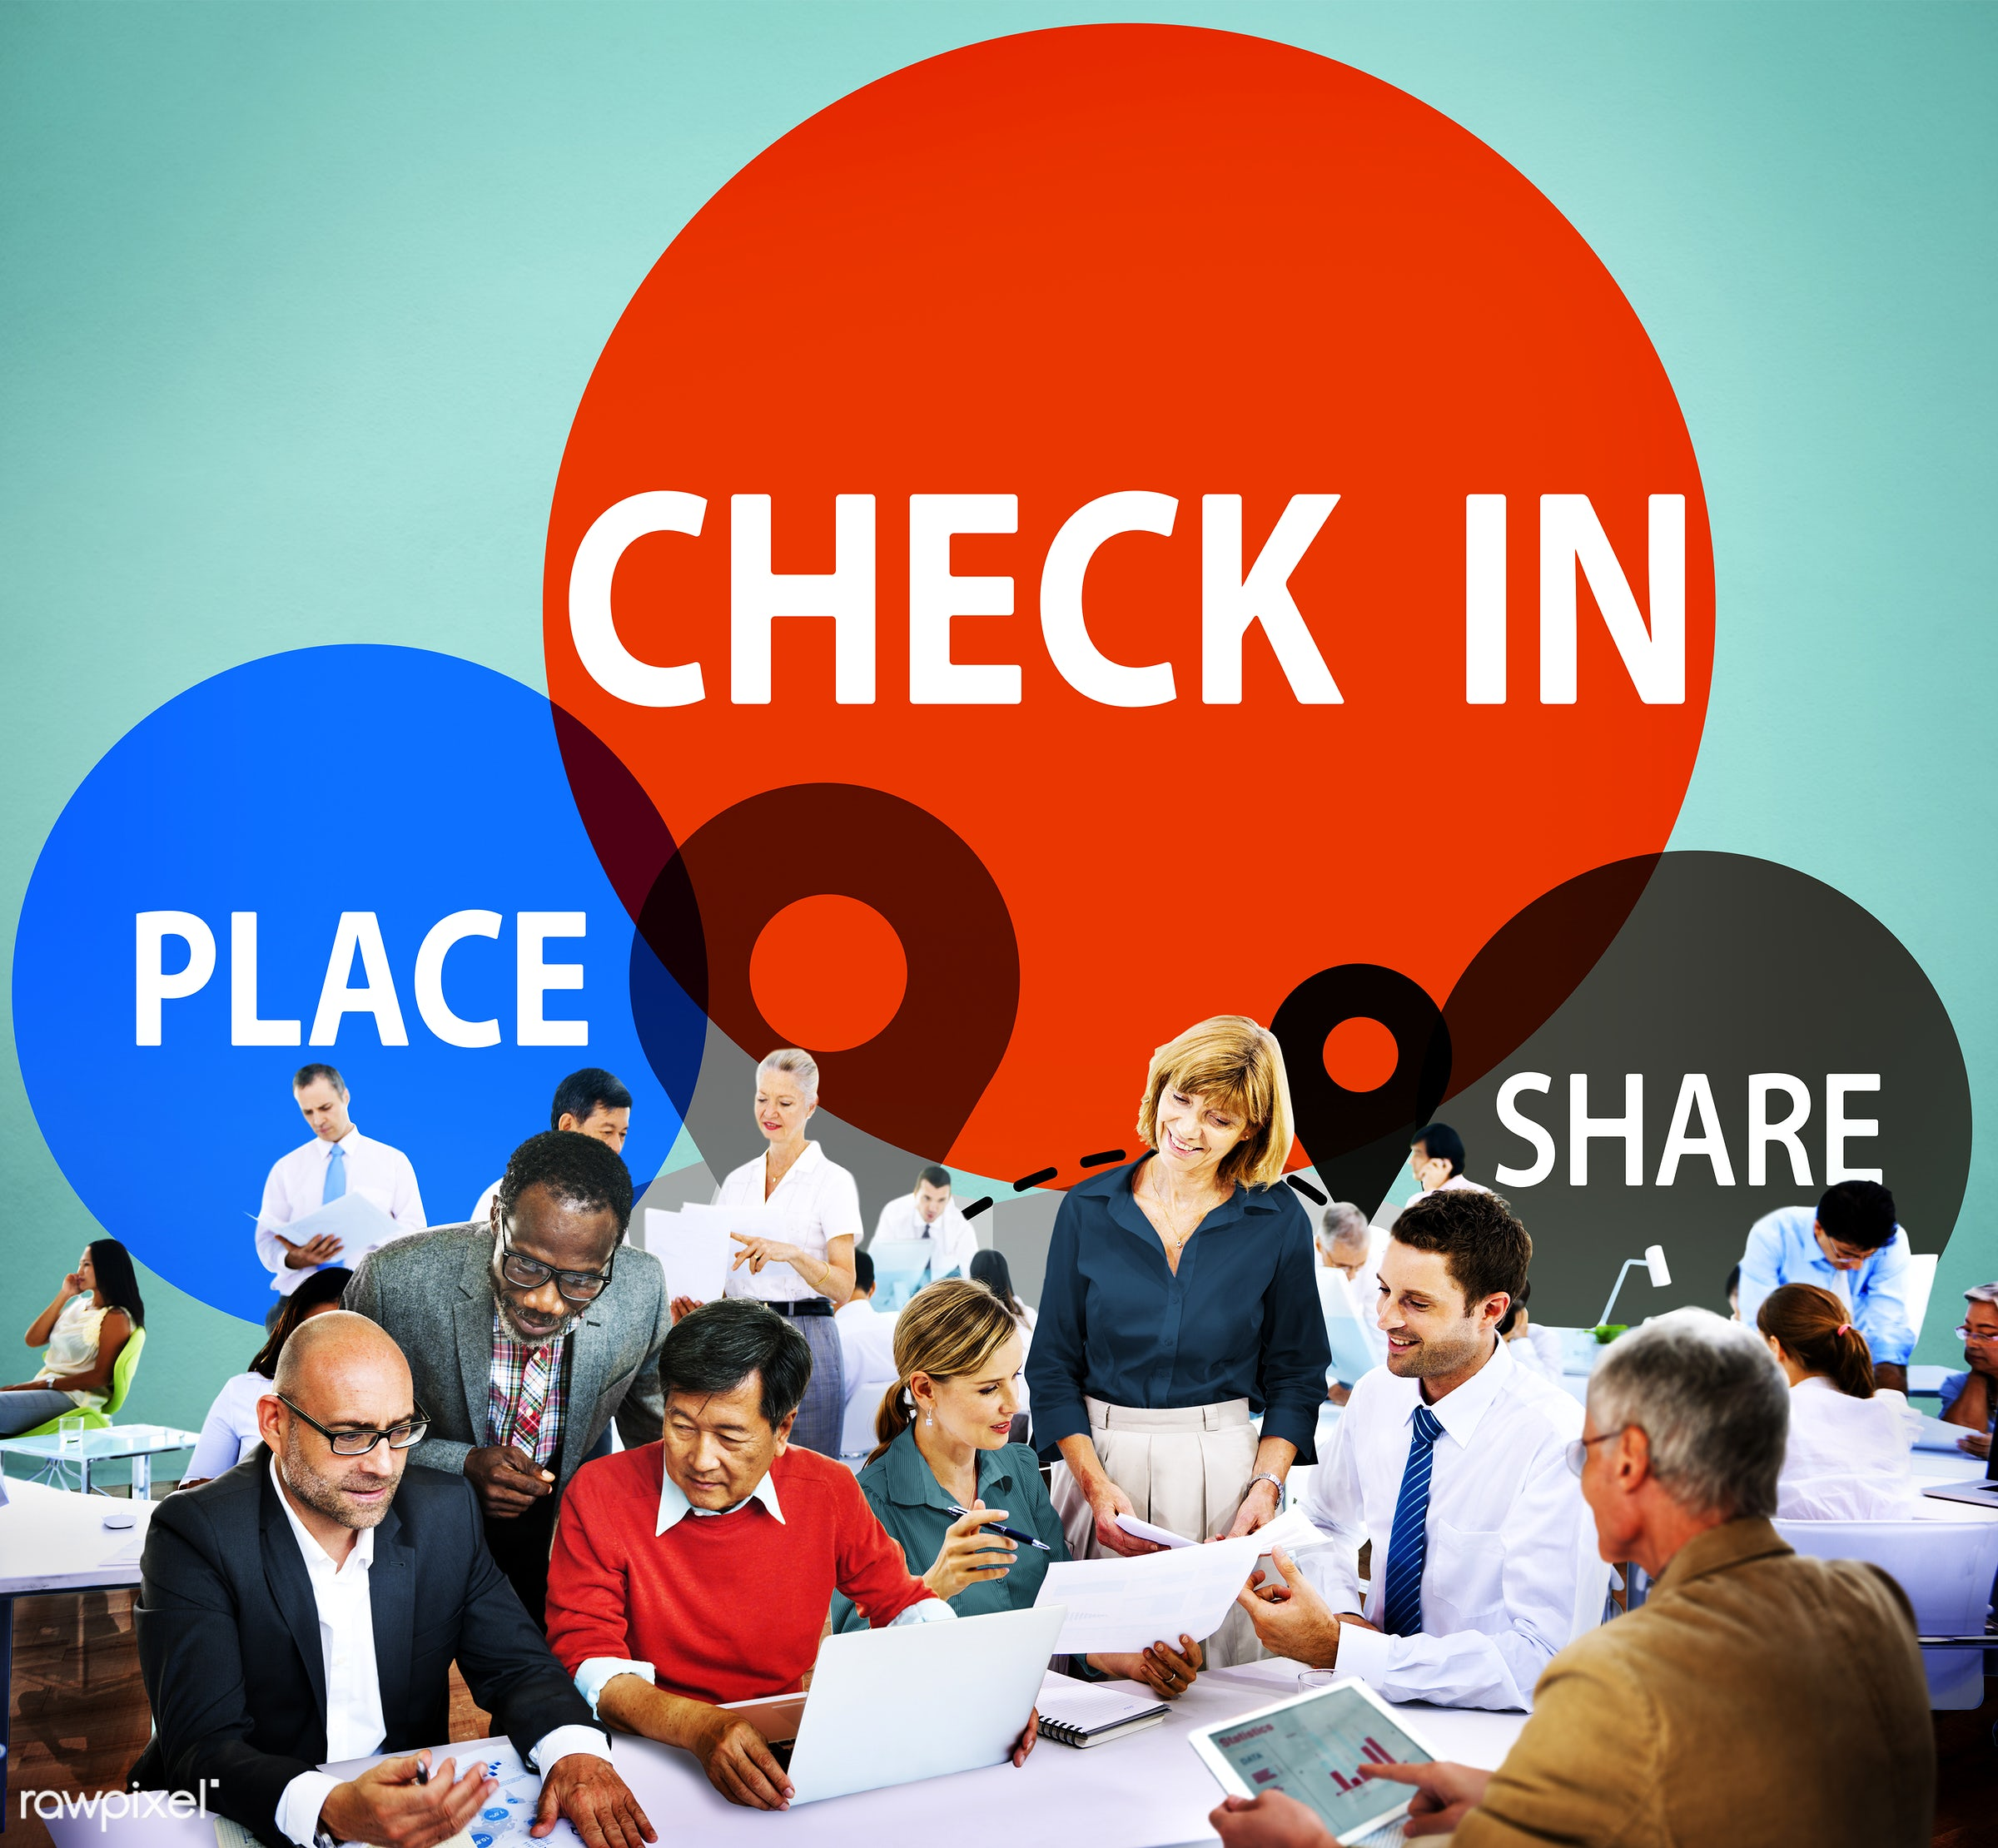 analysis, application, arrival, business, business people, businessmen, businesswomen, busy, check in, communication,...